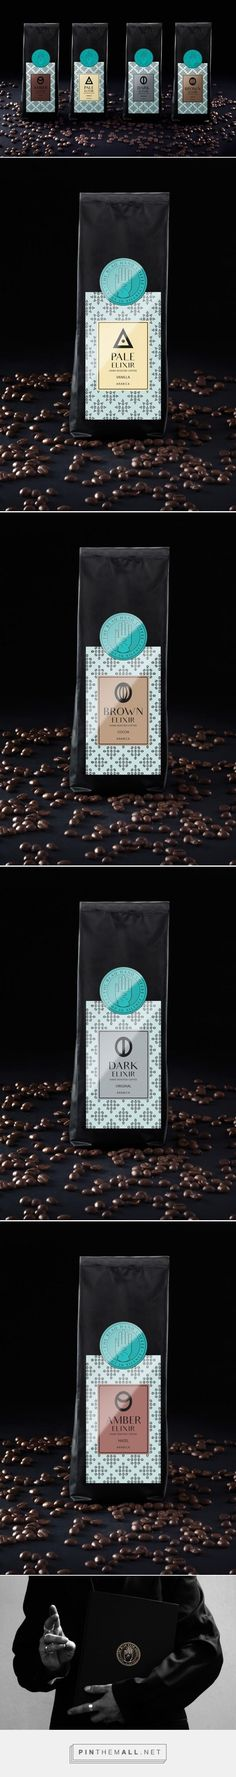 Blaq Hand Coffee (Student Project) - Packaging of the World